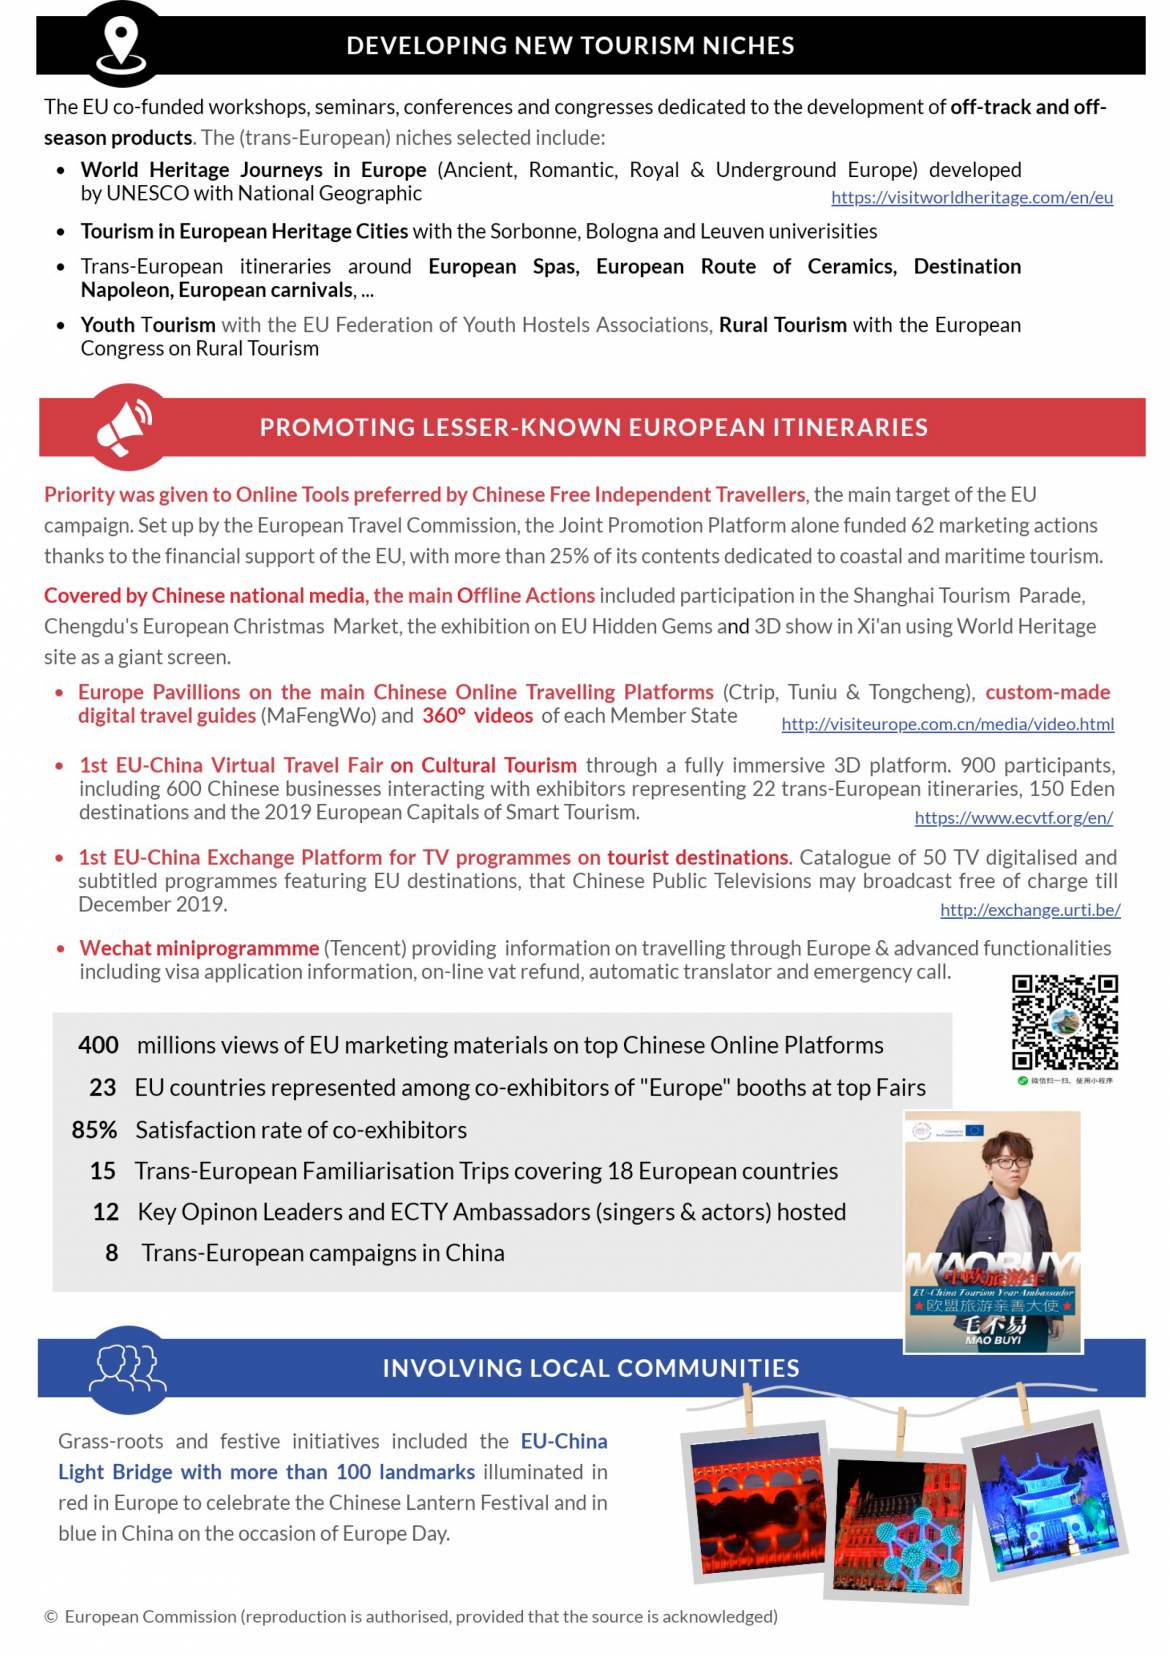 eu-china-tourism-year-infographic-2.jpg